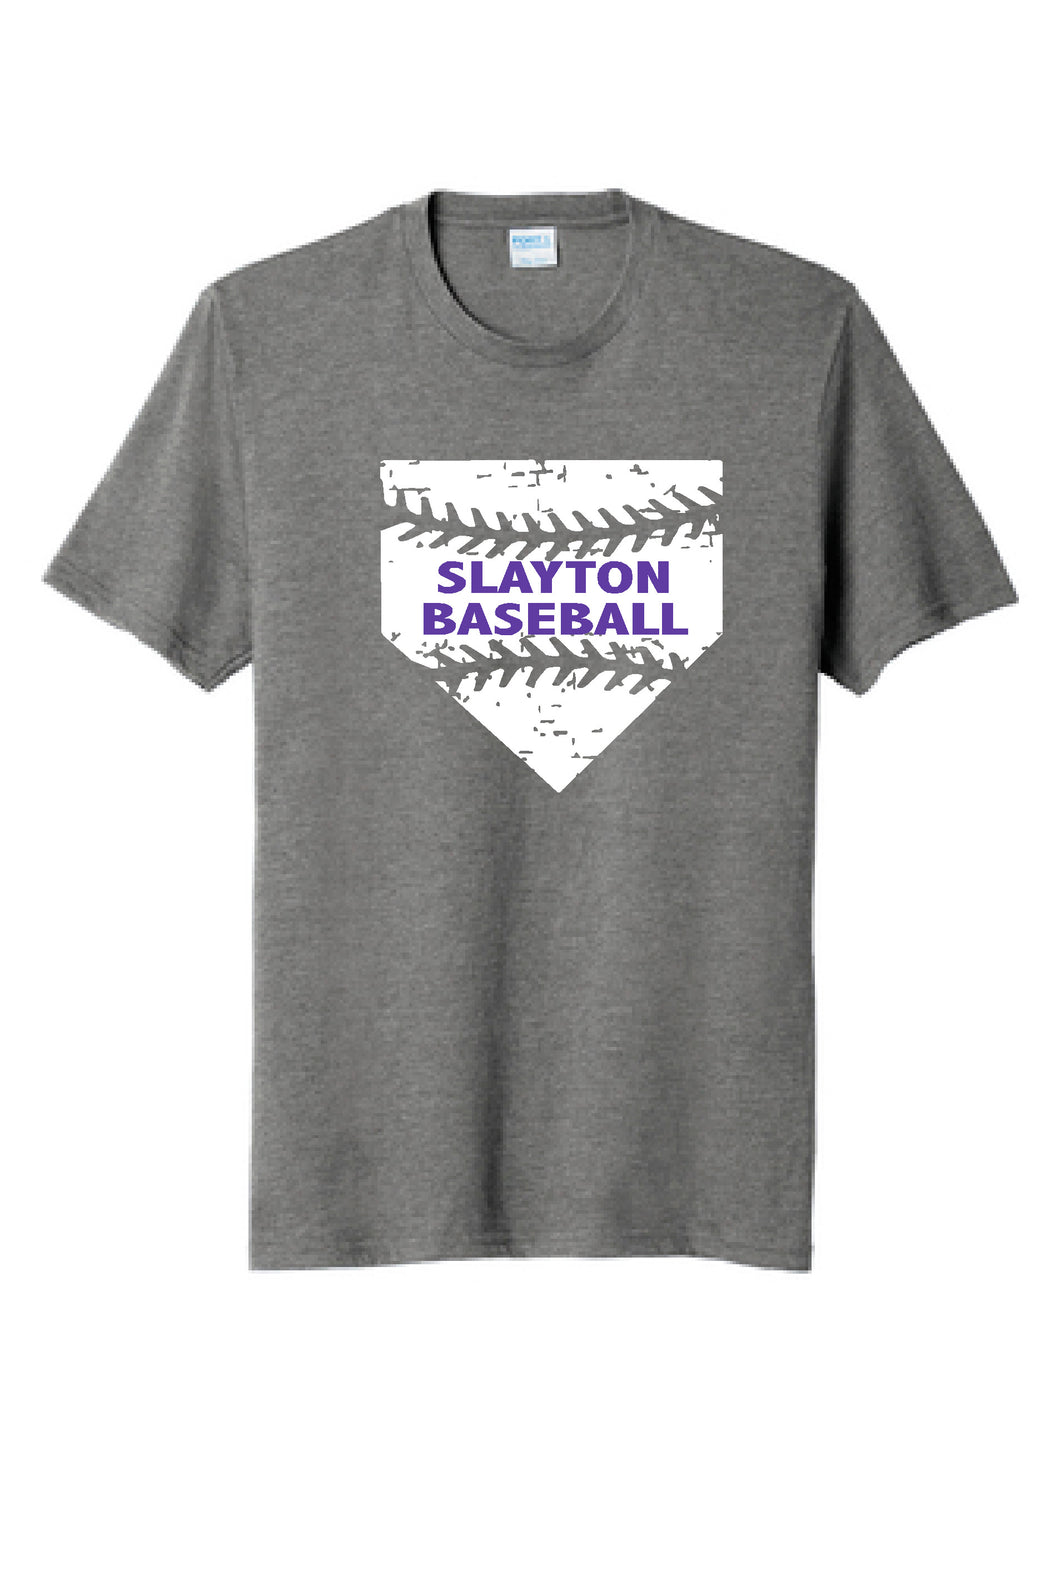 Slayton Baseball  Port & Co.  T-Shirt